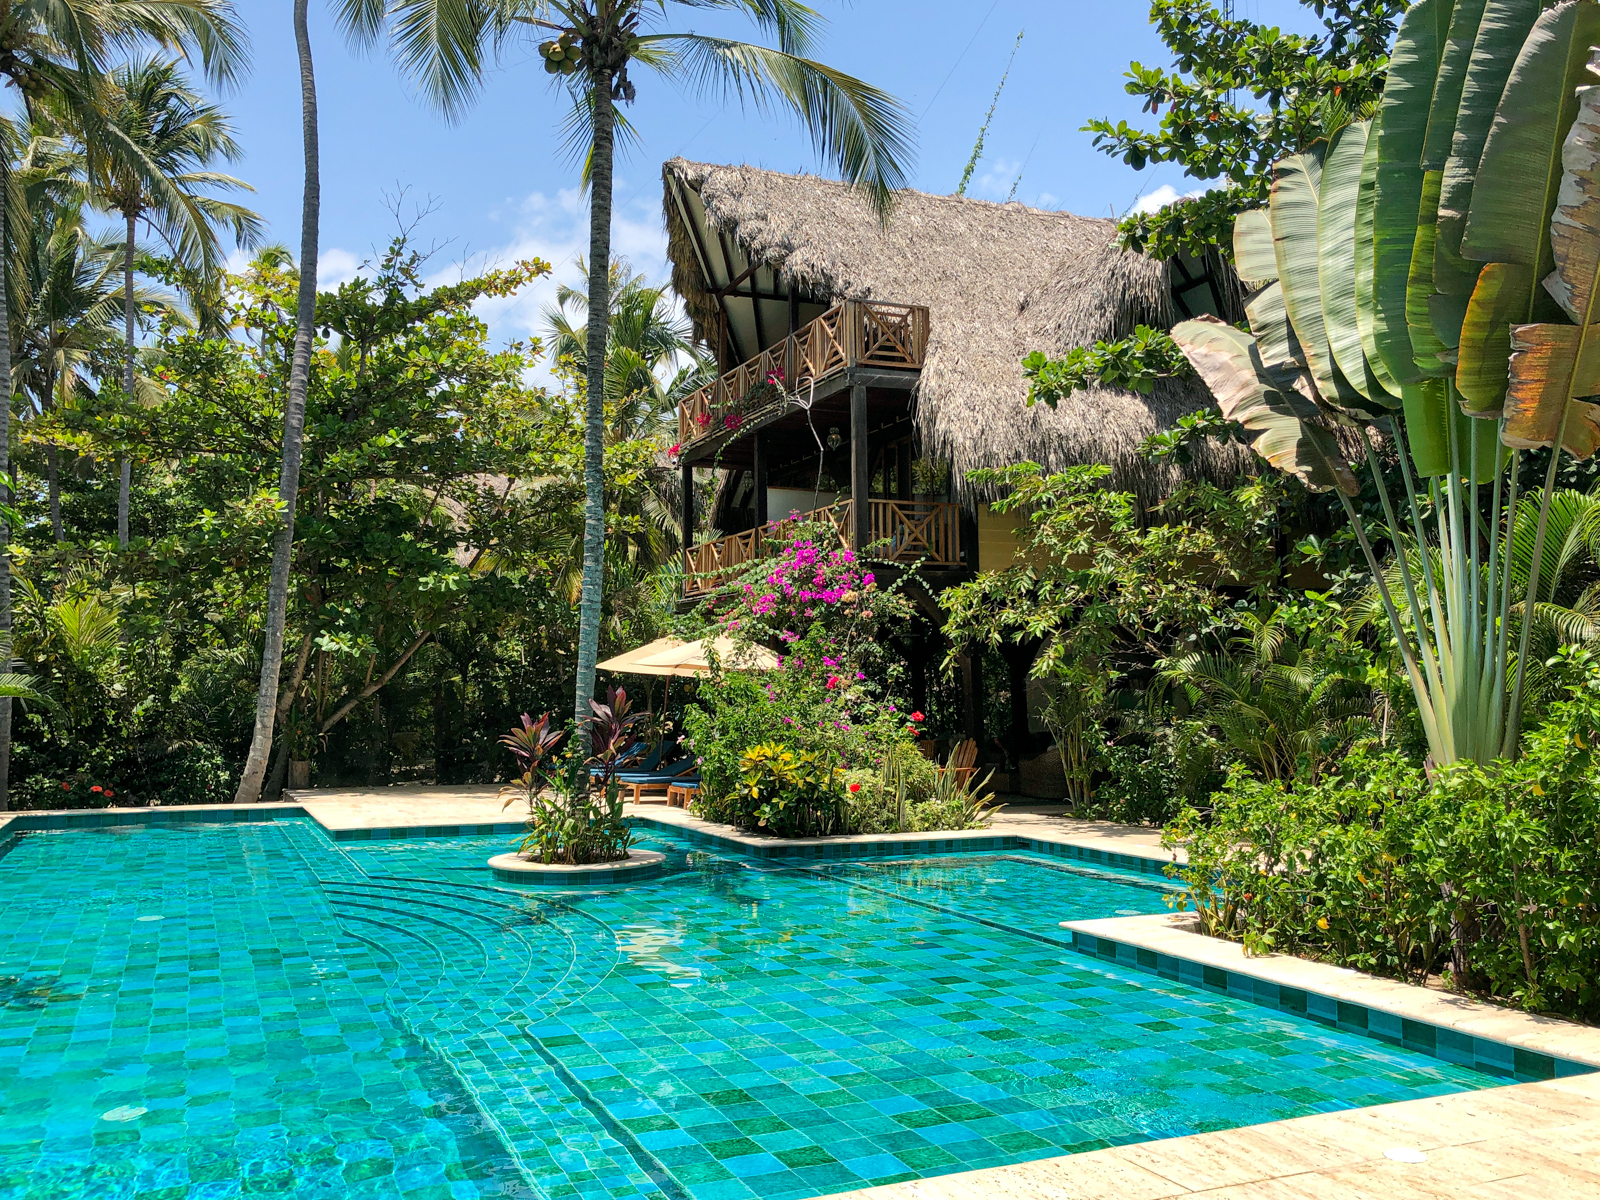 Pool at Cayena Beach Villa in Colombia